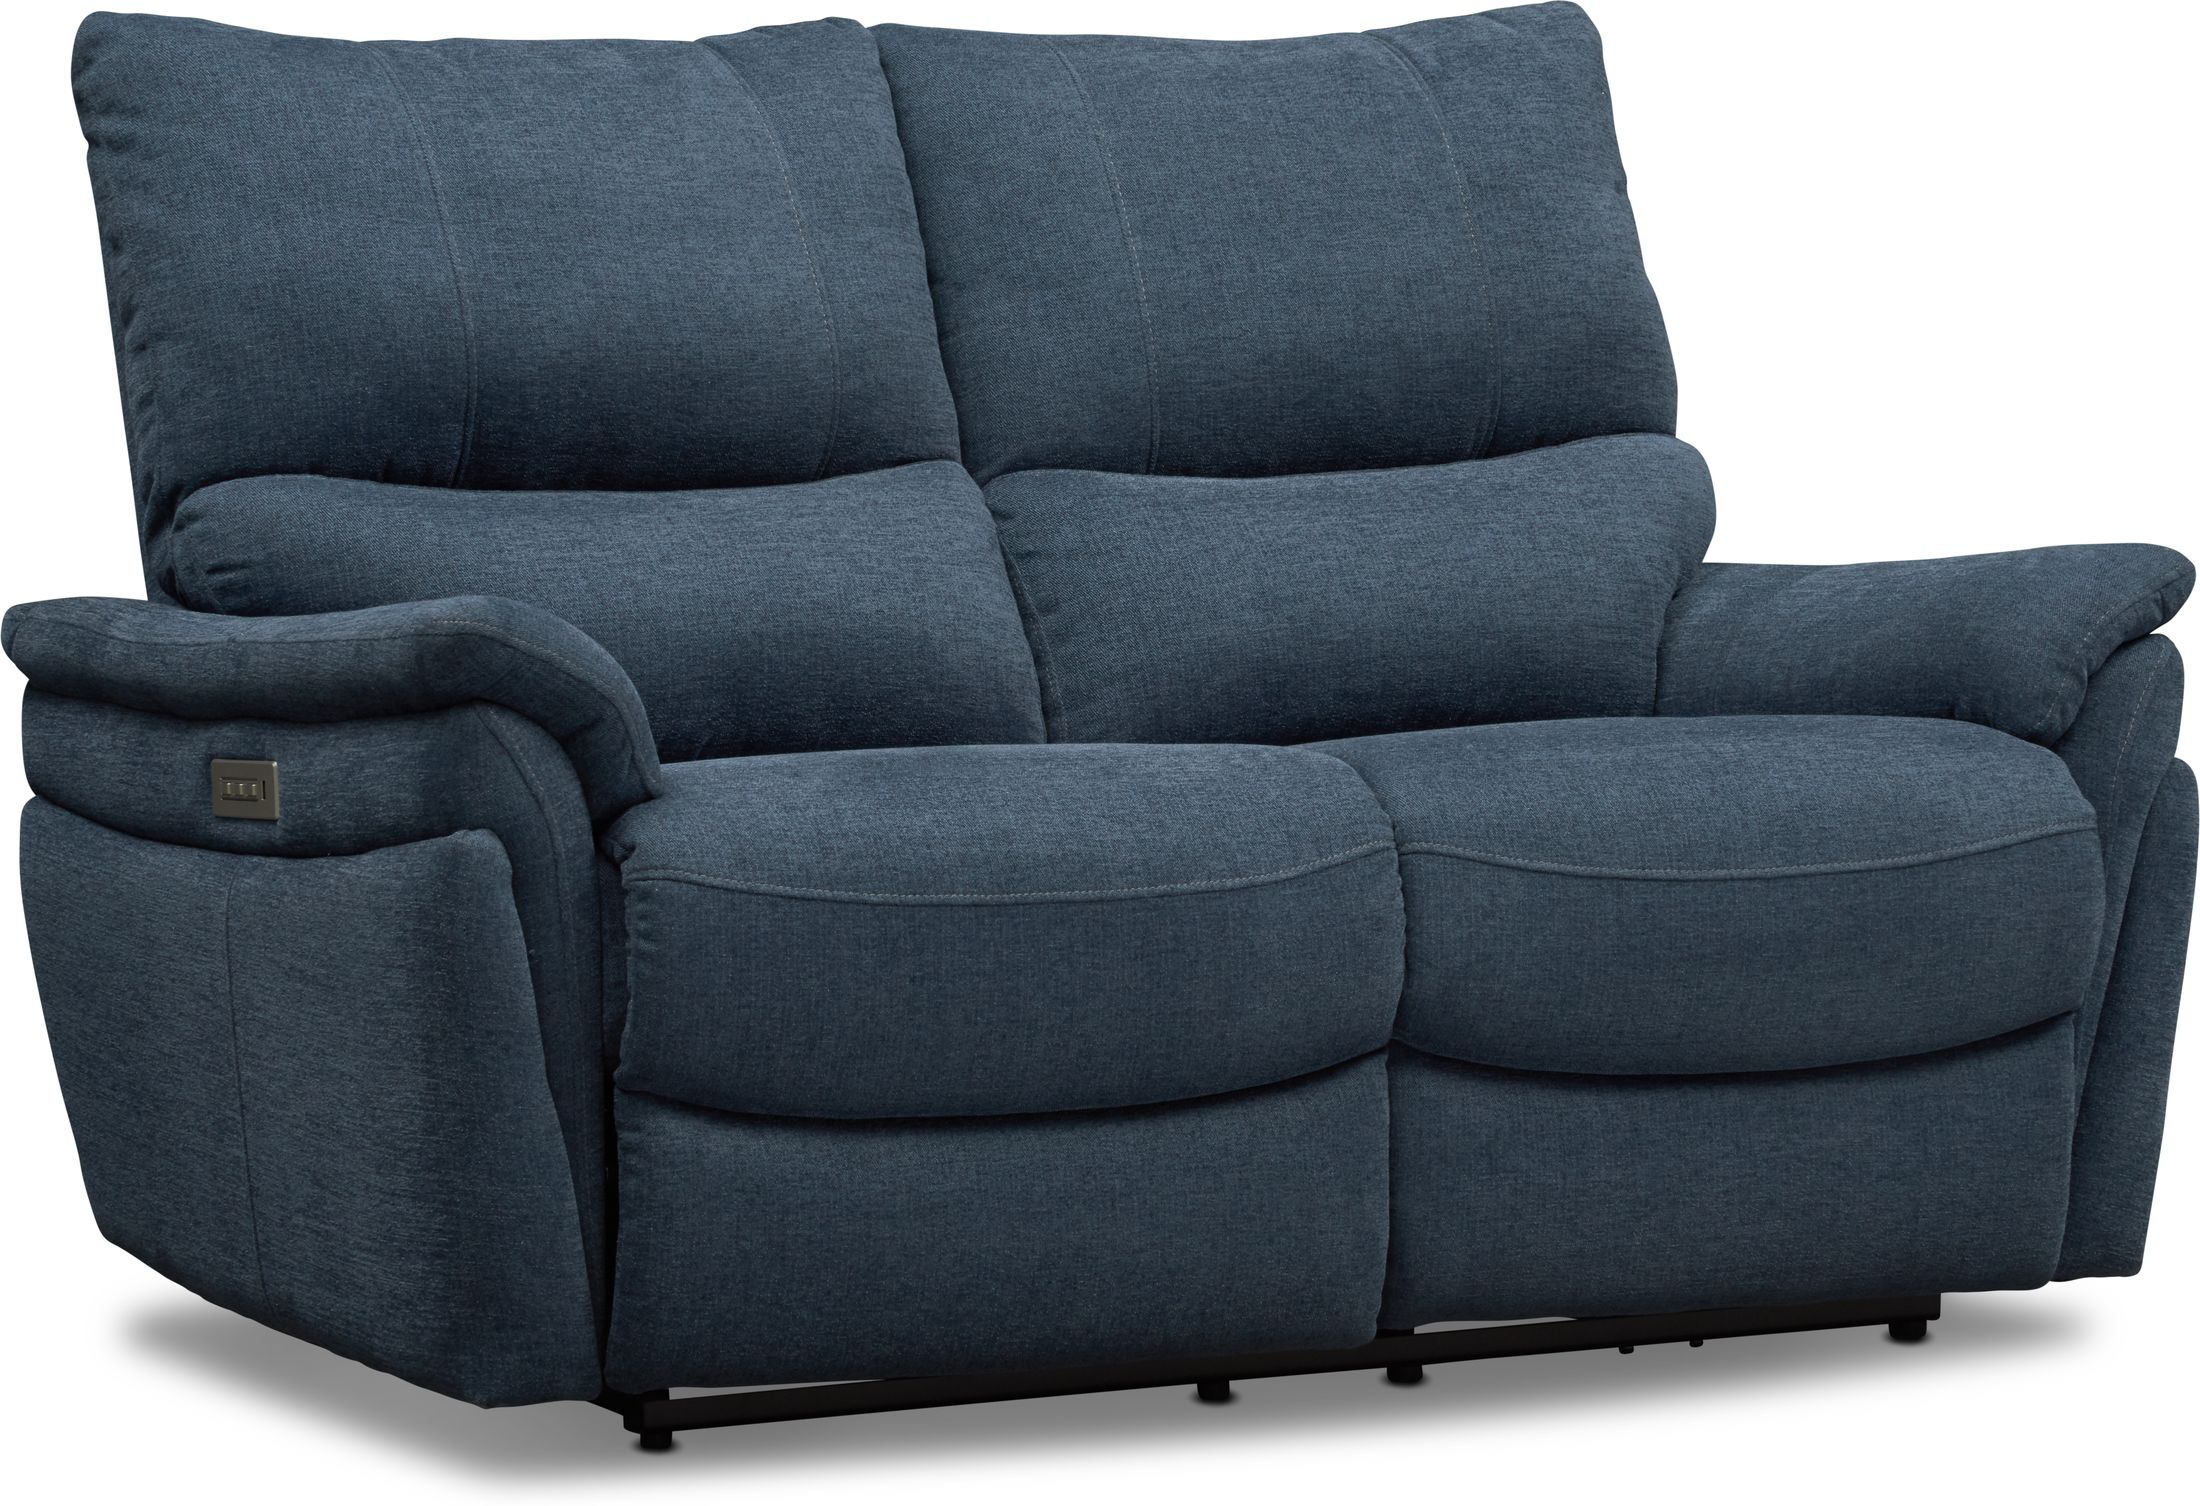 Living Room Furniture - Maddox Triple-Power Reclining Loveseat